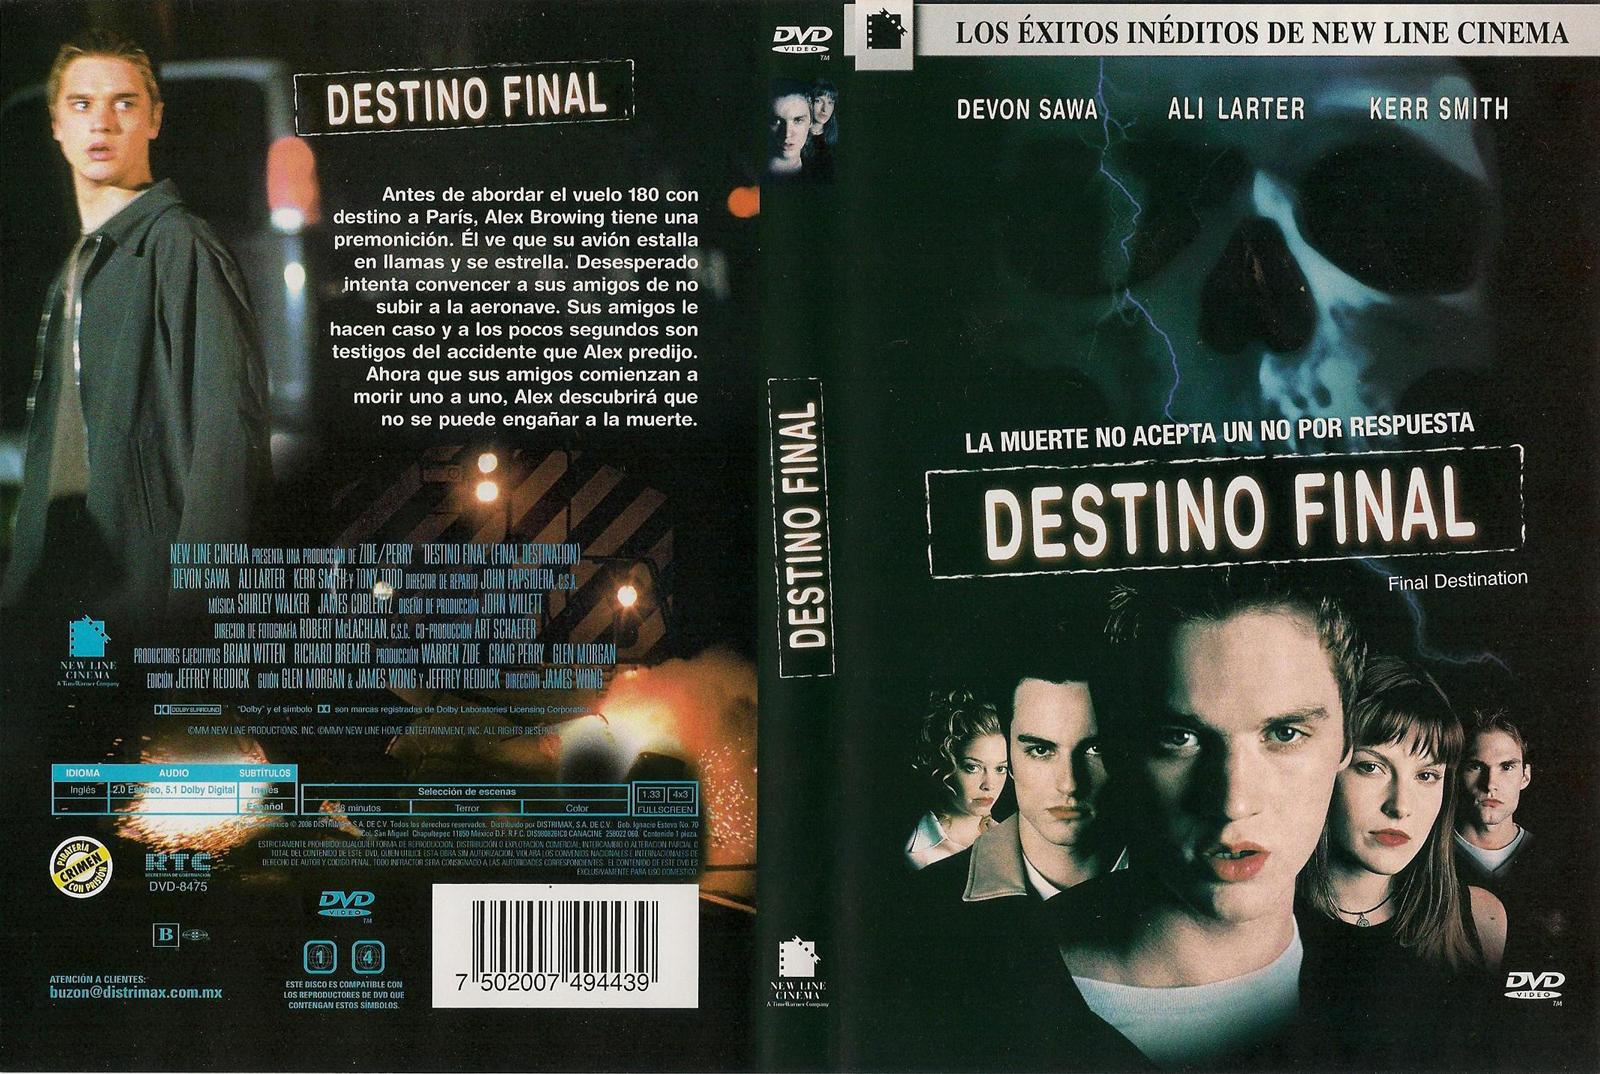 Destino final 1 2 y 3 rmvb exelente calidad warez for Affitti cabina lago kerr scott